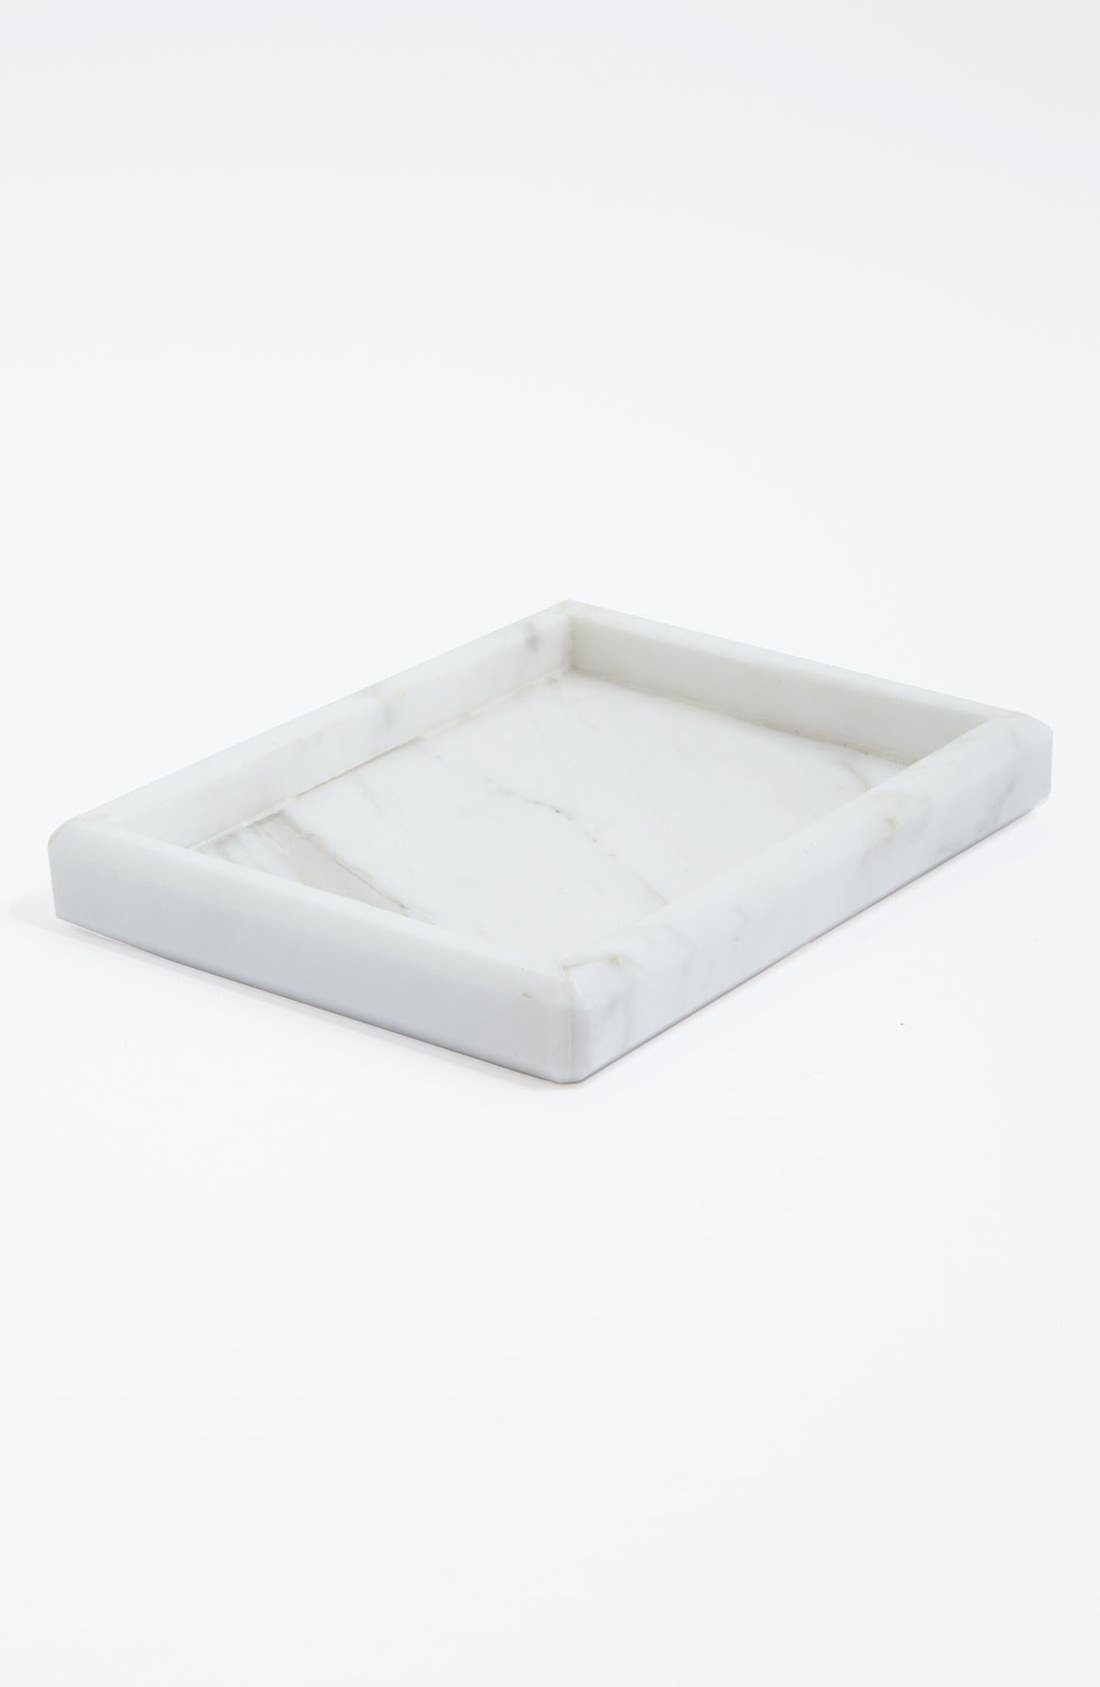 Main Image - Waterworks Studio 'Luna' White Marble Soap Dish (Online Only)